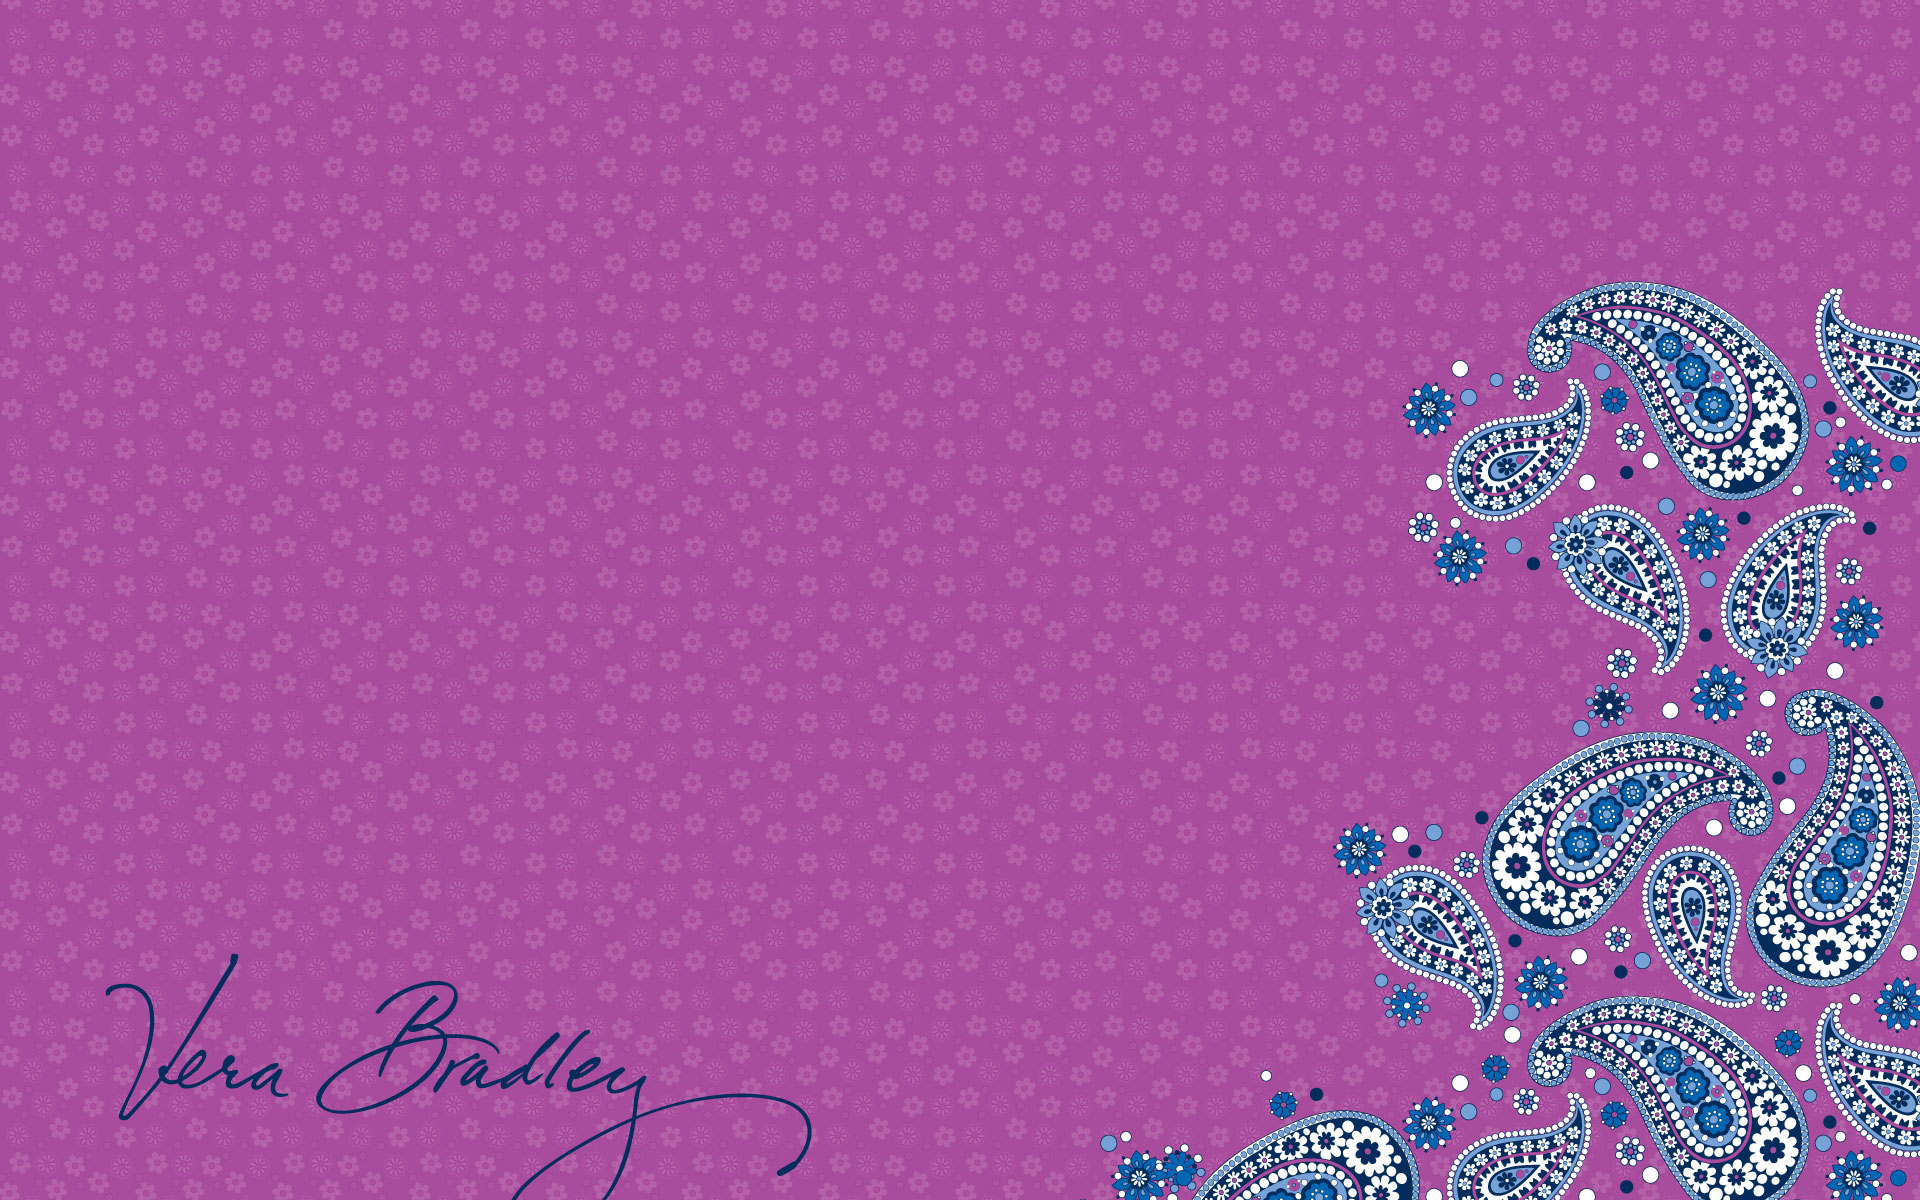 Vera Bradley Images Vb Wallpapers Hd Wallpaper And Background Photos